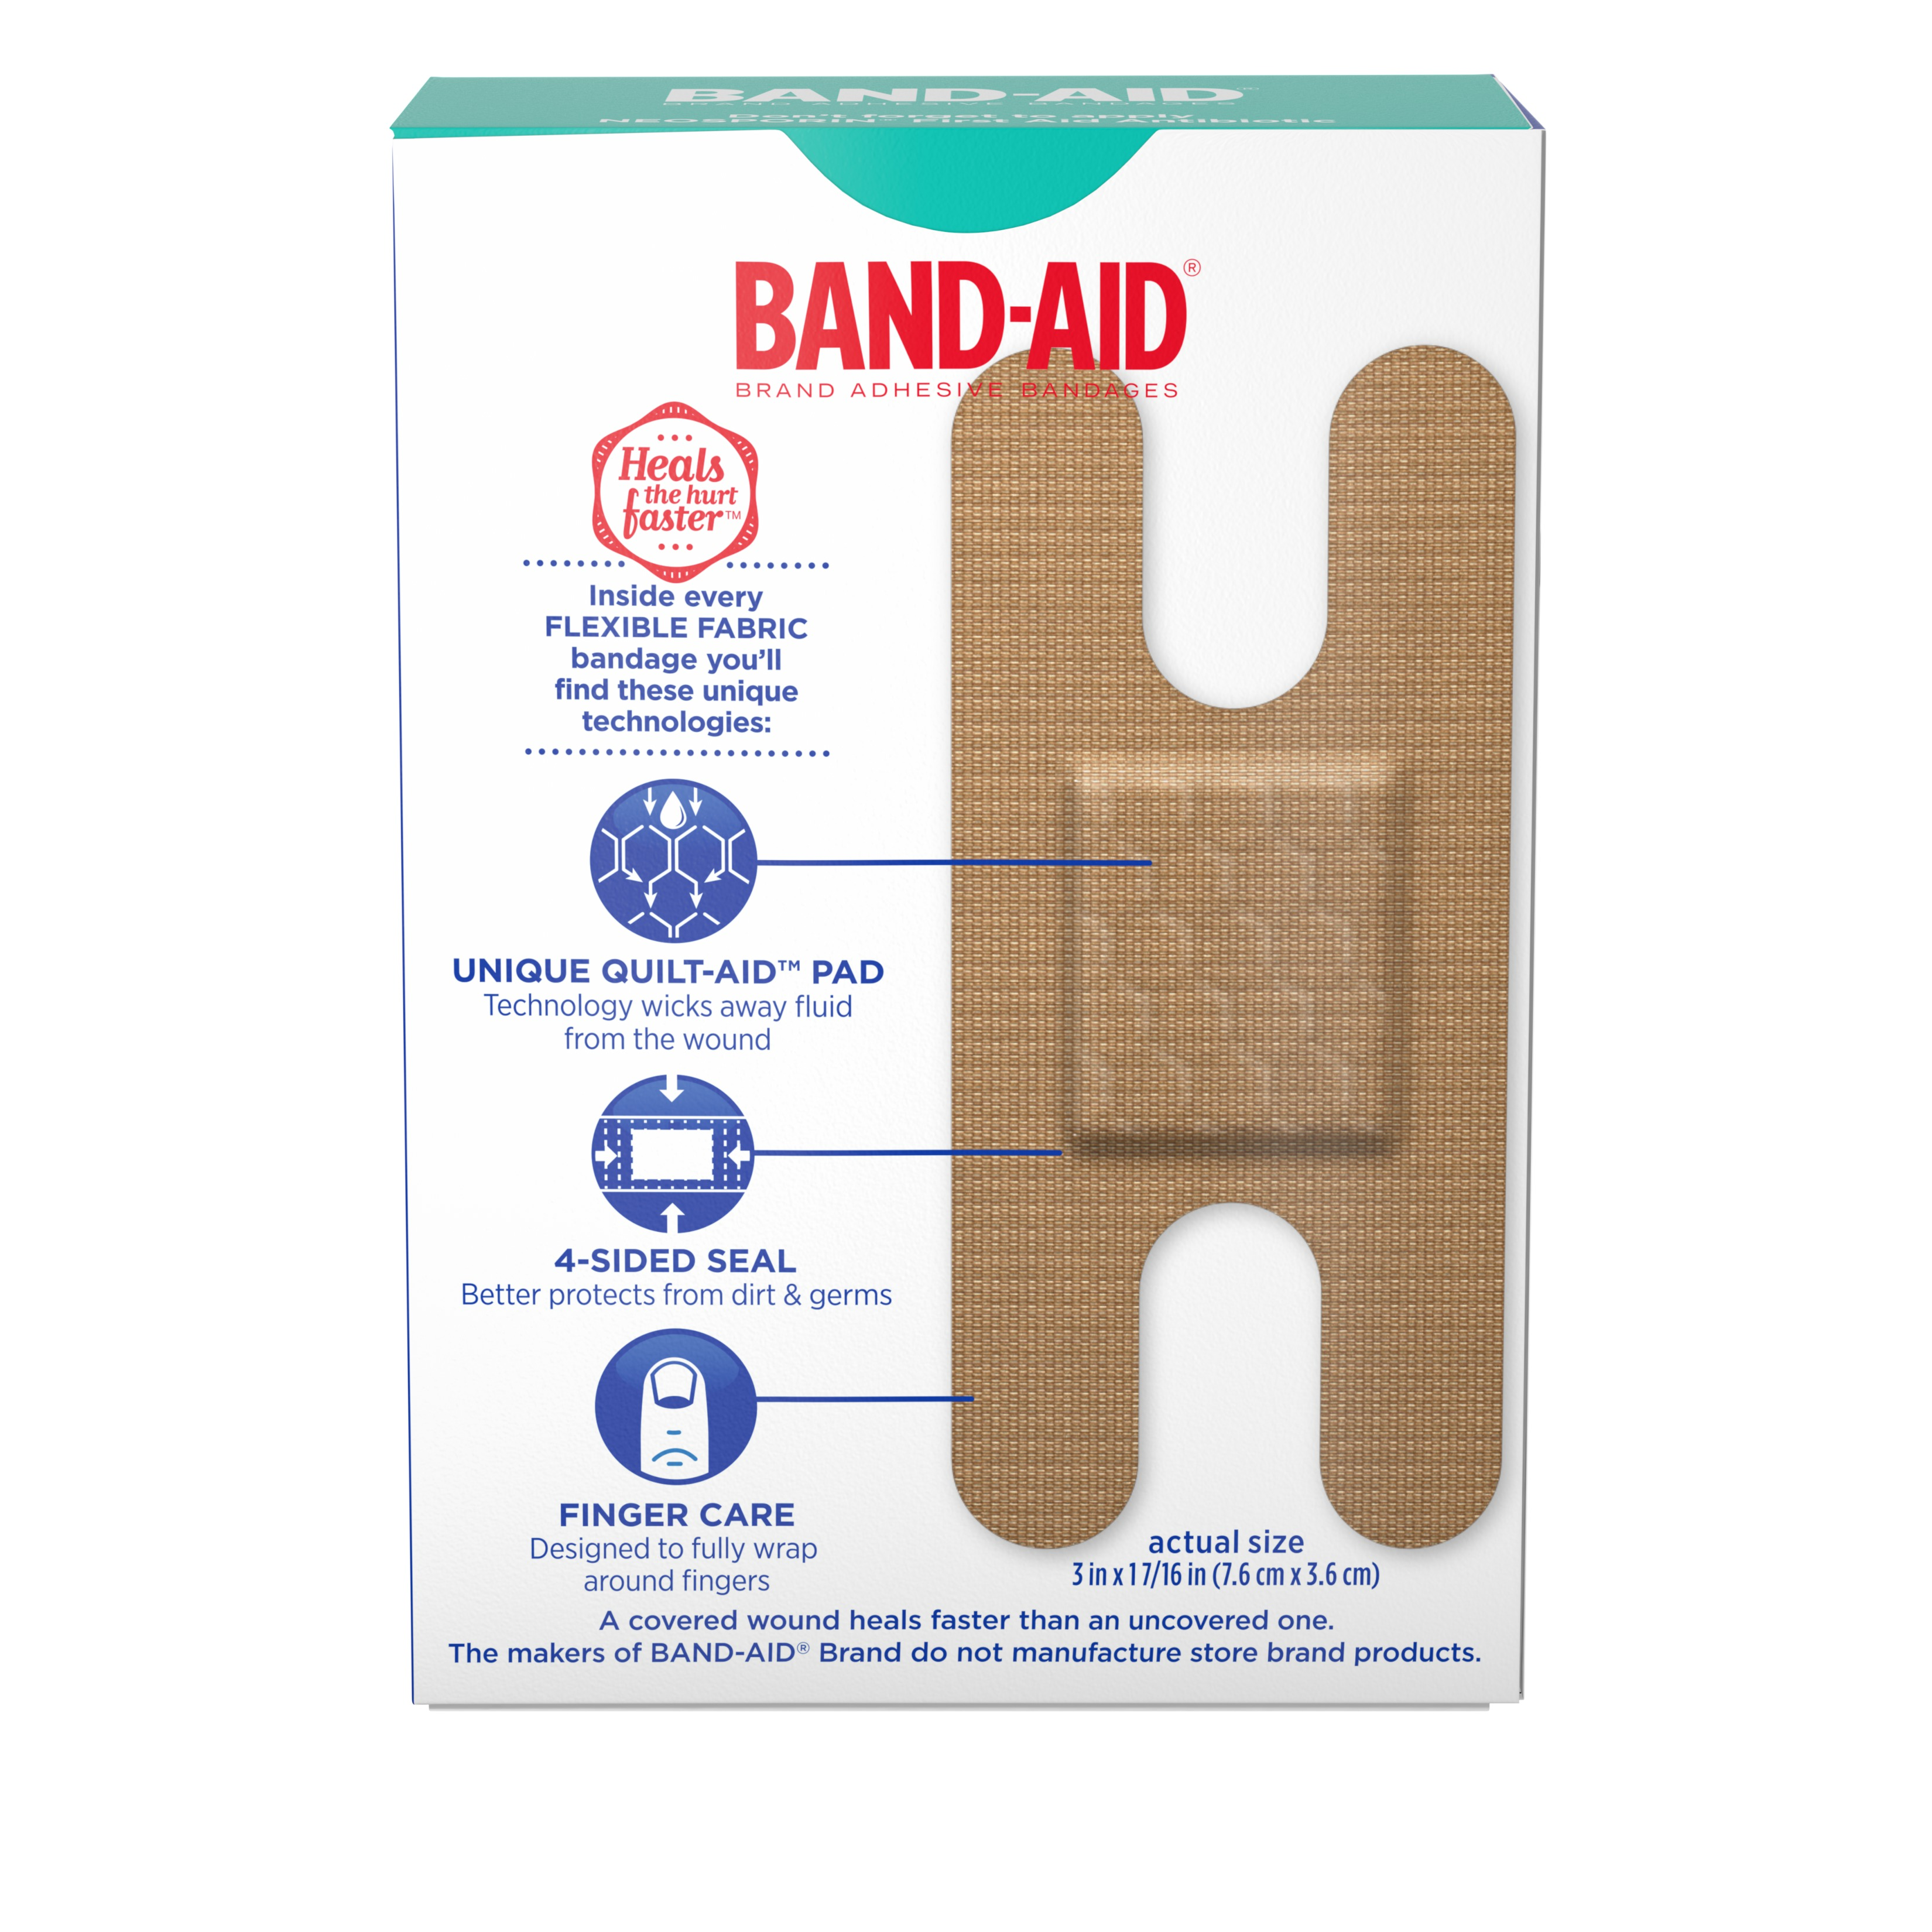 2 Pack Band Aid Brand Flexible Fabric Knuckle And Fingertip Adhesive Bandages For Wound Care Assorted Sizes 20 Count Walmart Com Walmart Com